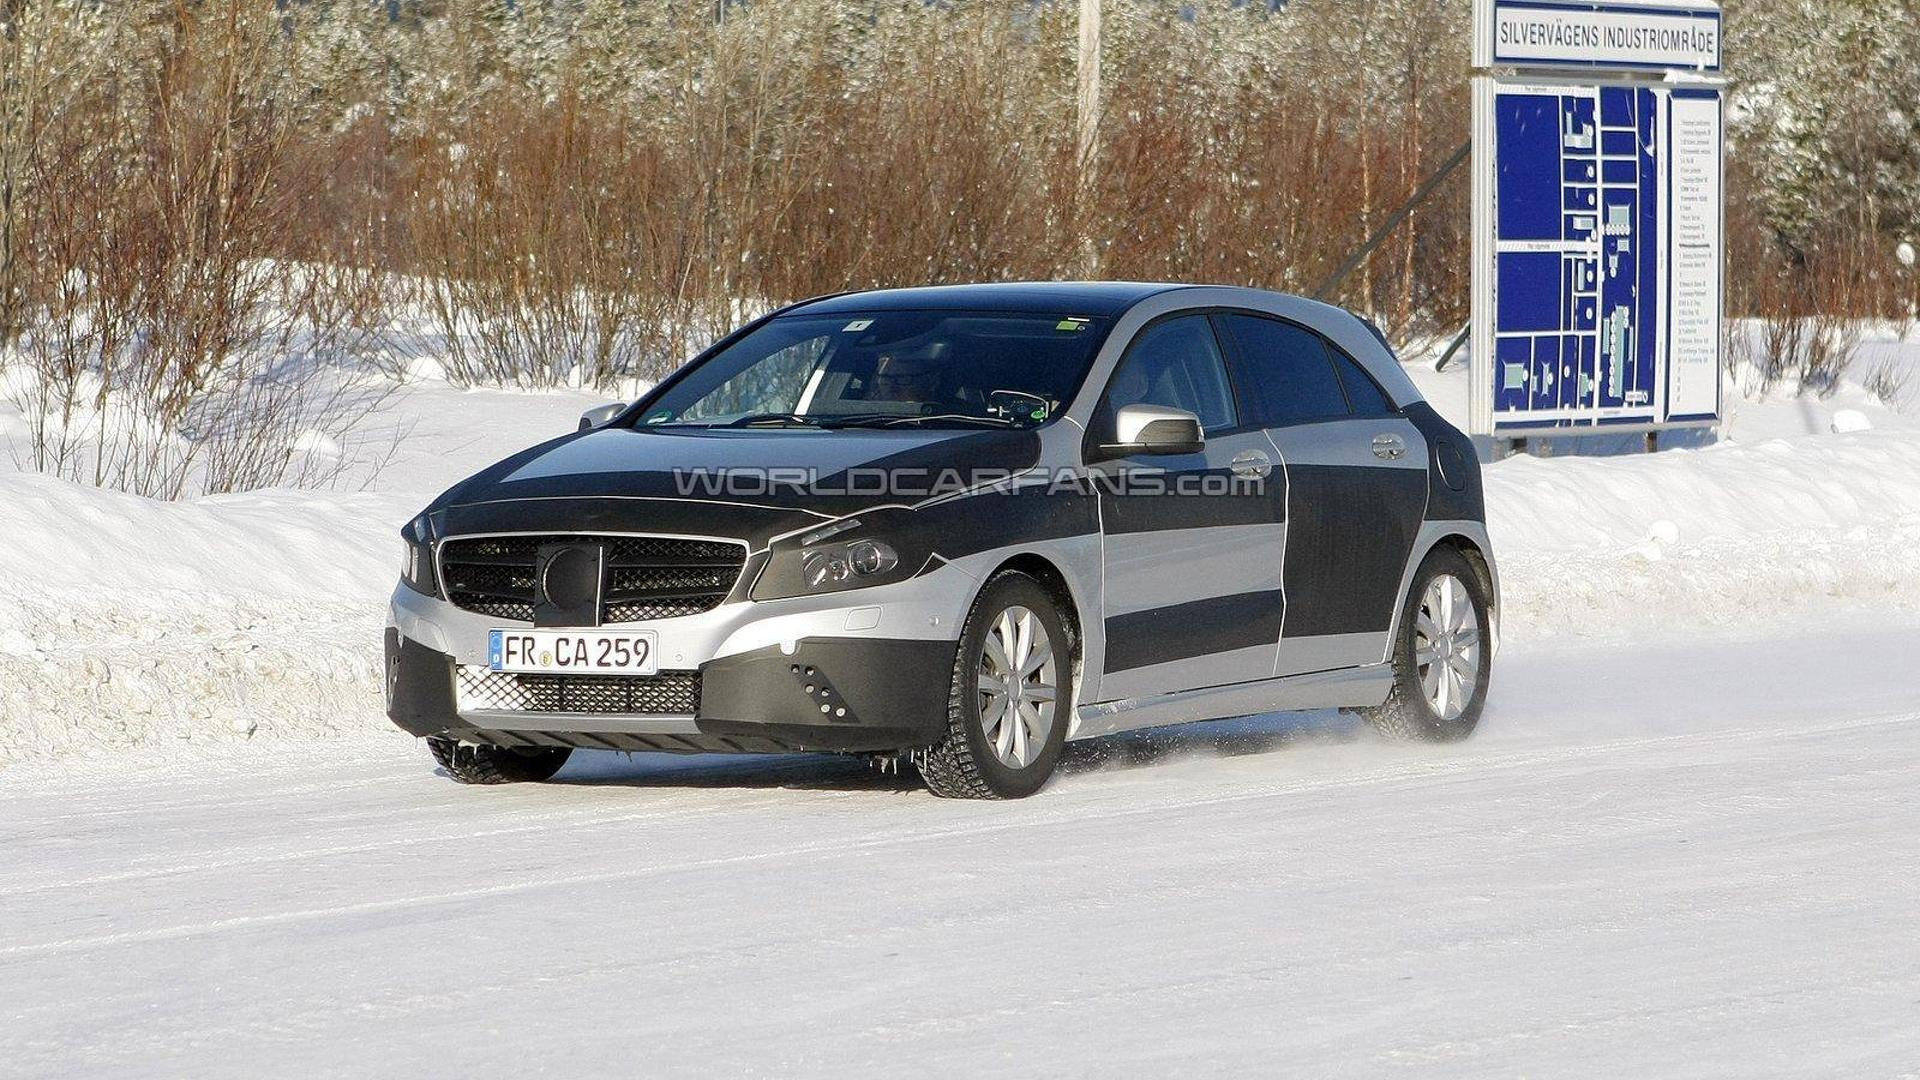 2013 Mercedes-Benz A-Class spied almost uncovered